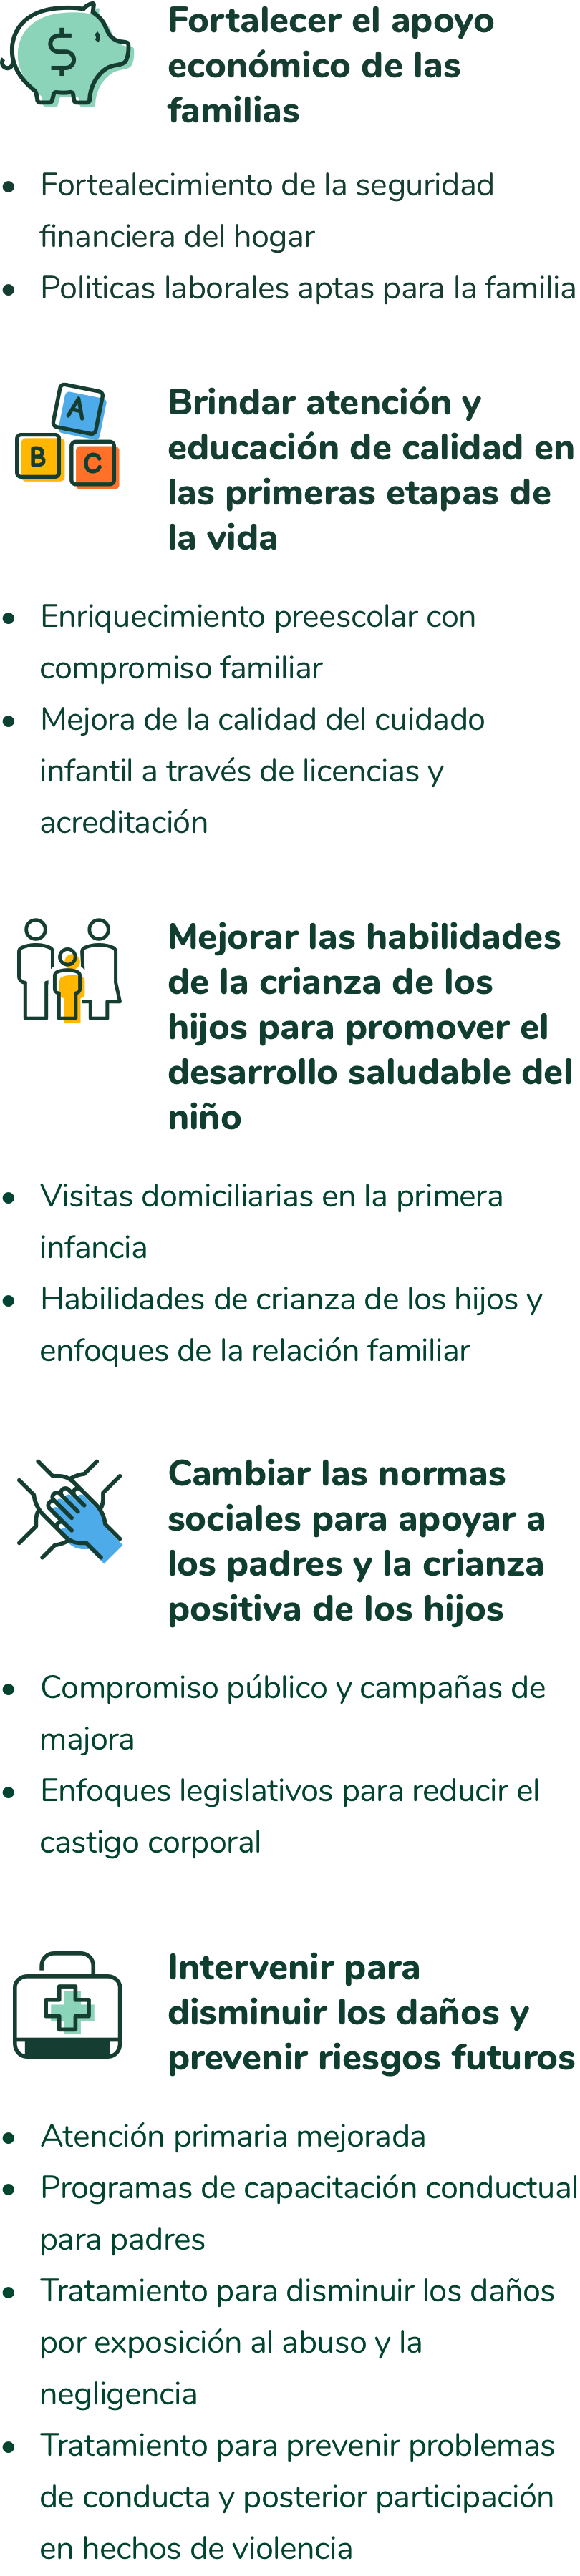 https://encuentraquedecir.org/wp-content/uploads/2020/09/group-14@3x_1.png